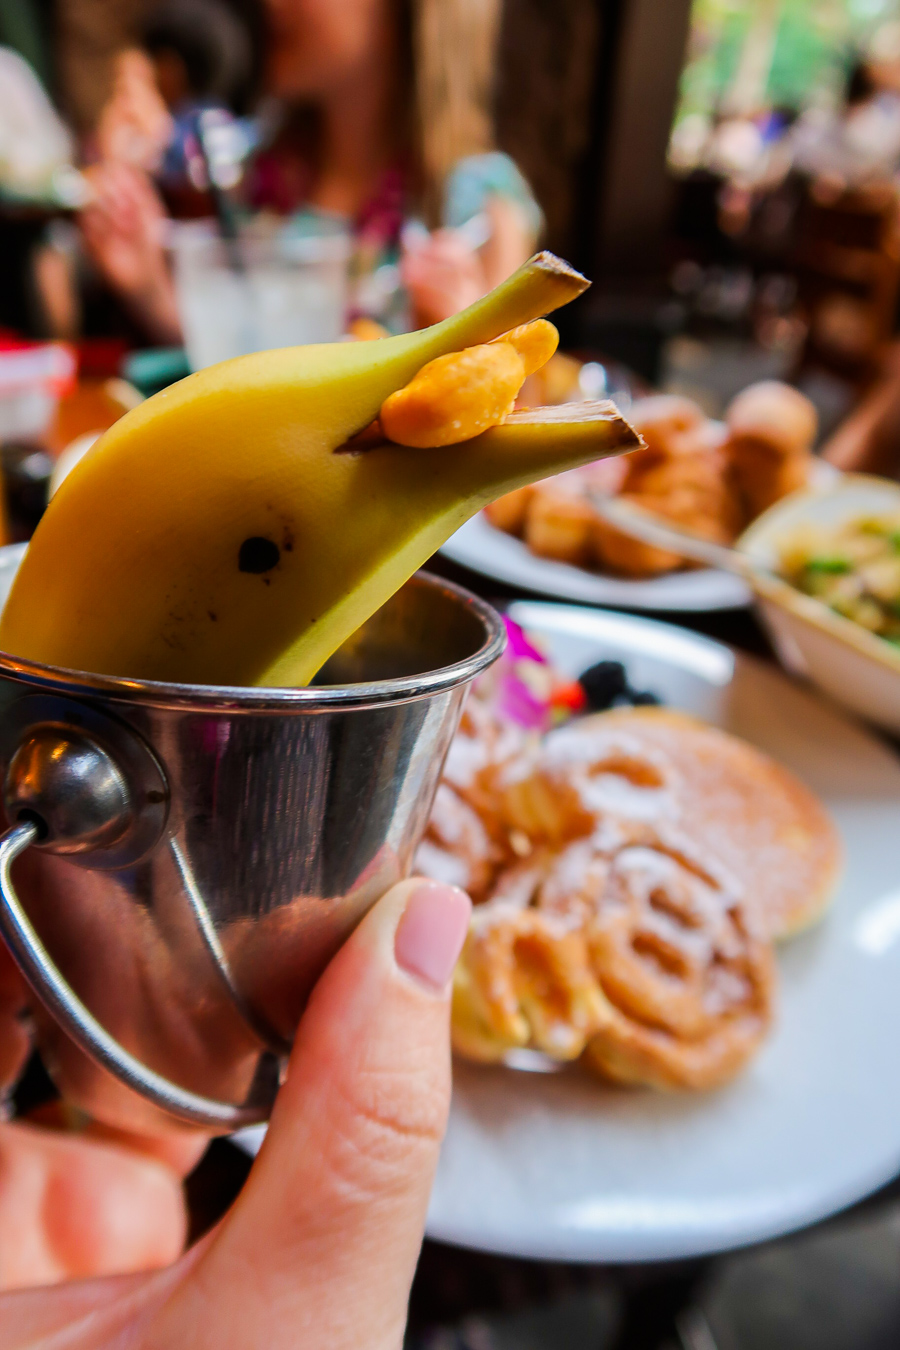 Banana cut in the shape of a dolphin at the breakfast buffet at Disney's Aulani